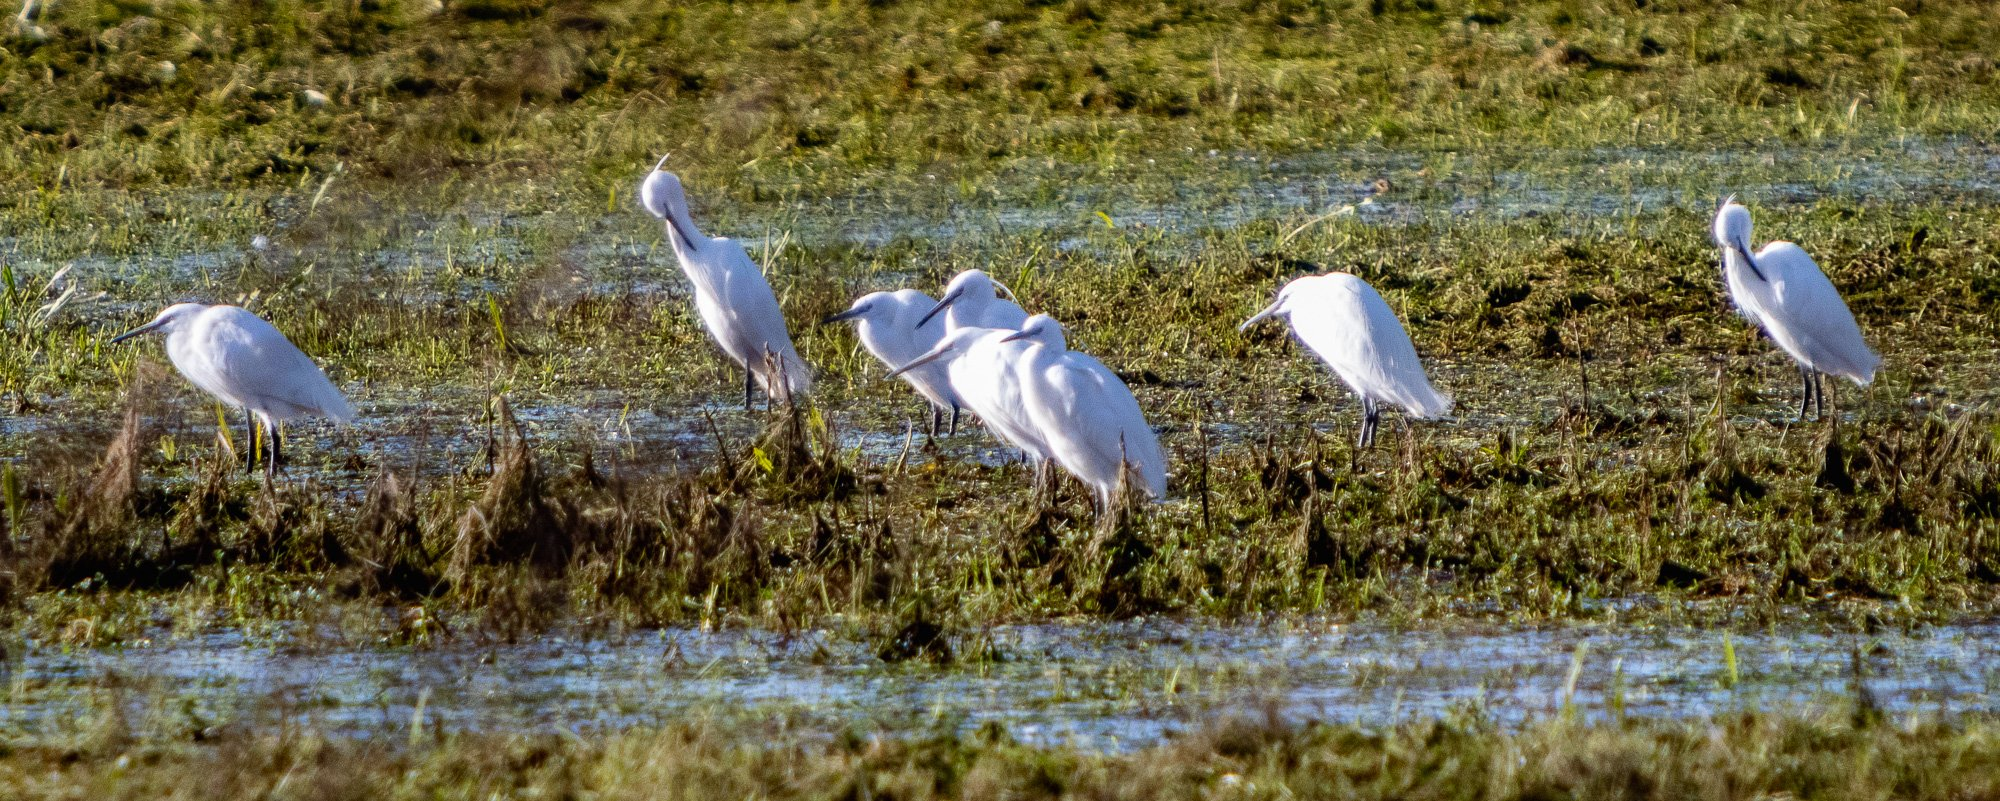 Little Egrets